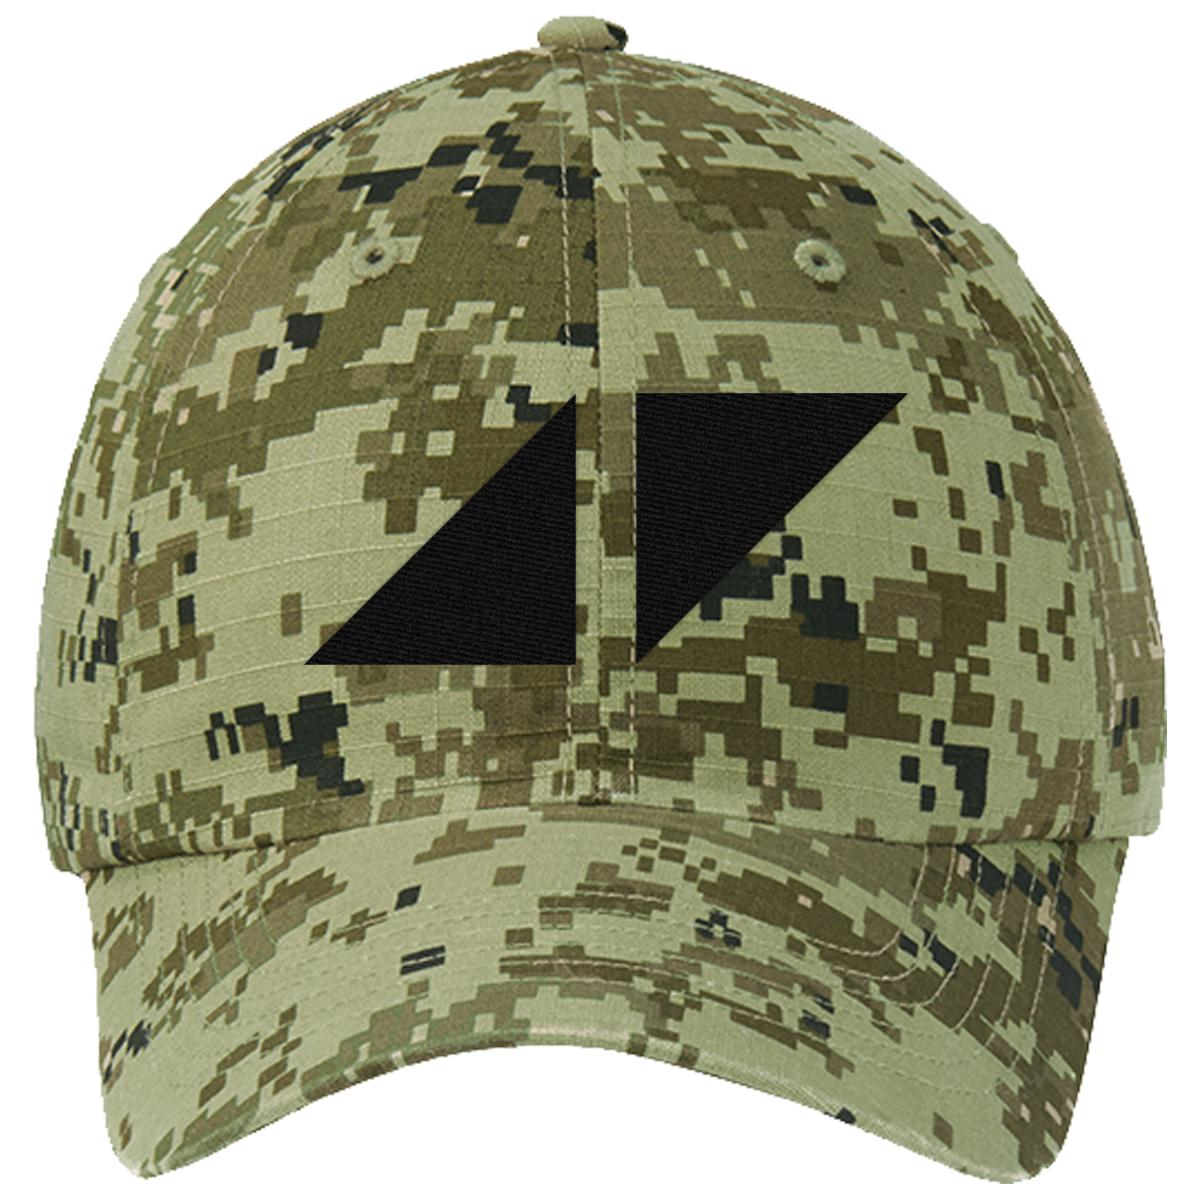 avicii Ripstop Camouflage Cotton Twill Cap (Embroidered)  9871566bfd35